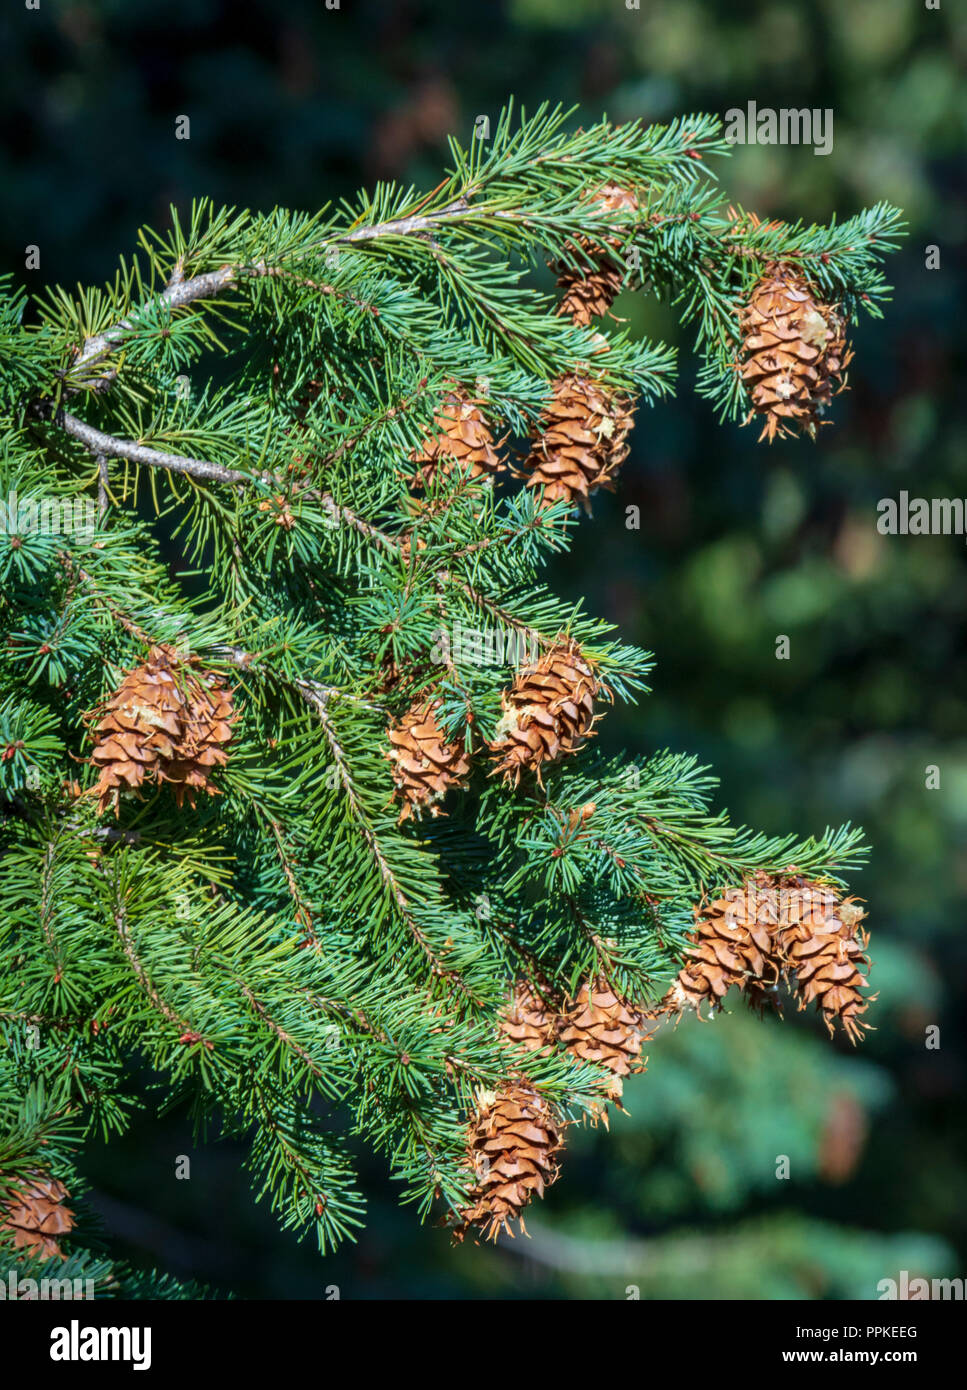 Douglas Fir tree (Pseudotsuga menziesii) in close up showing pine cones and needles, Castle Rock Colorado US. Photo taken in September. - Stock Image